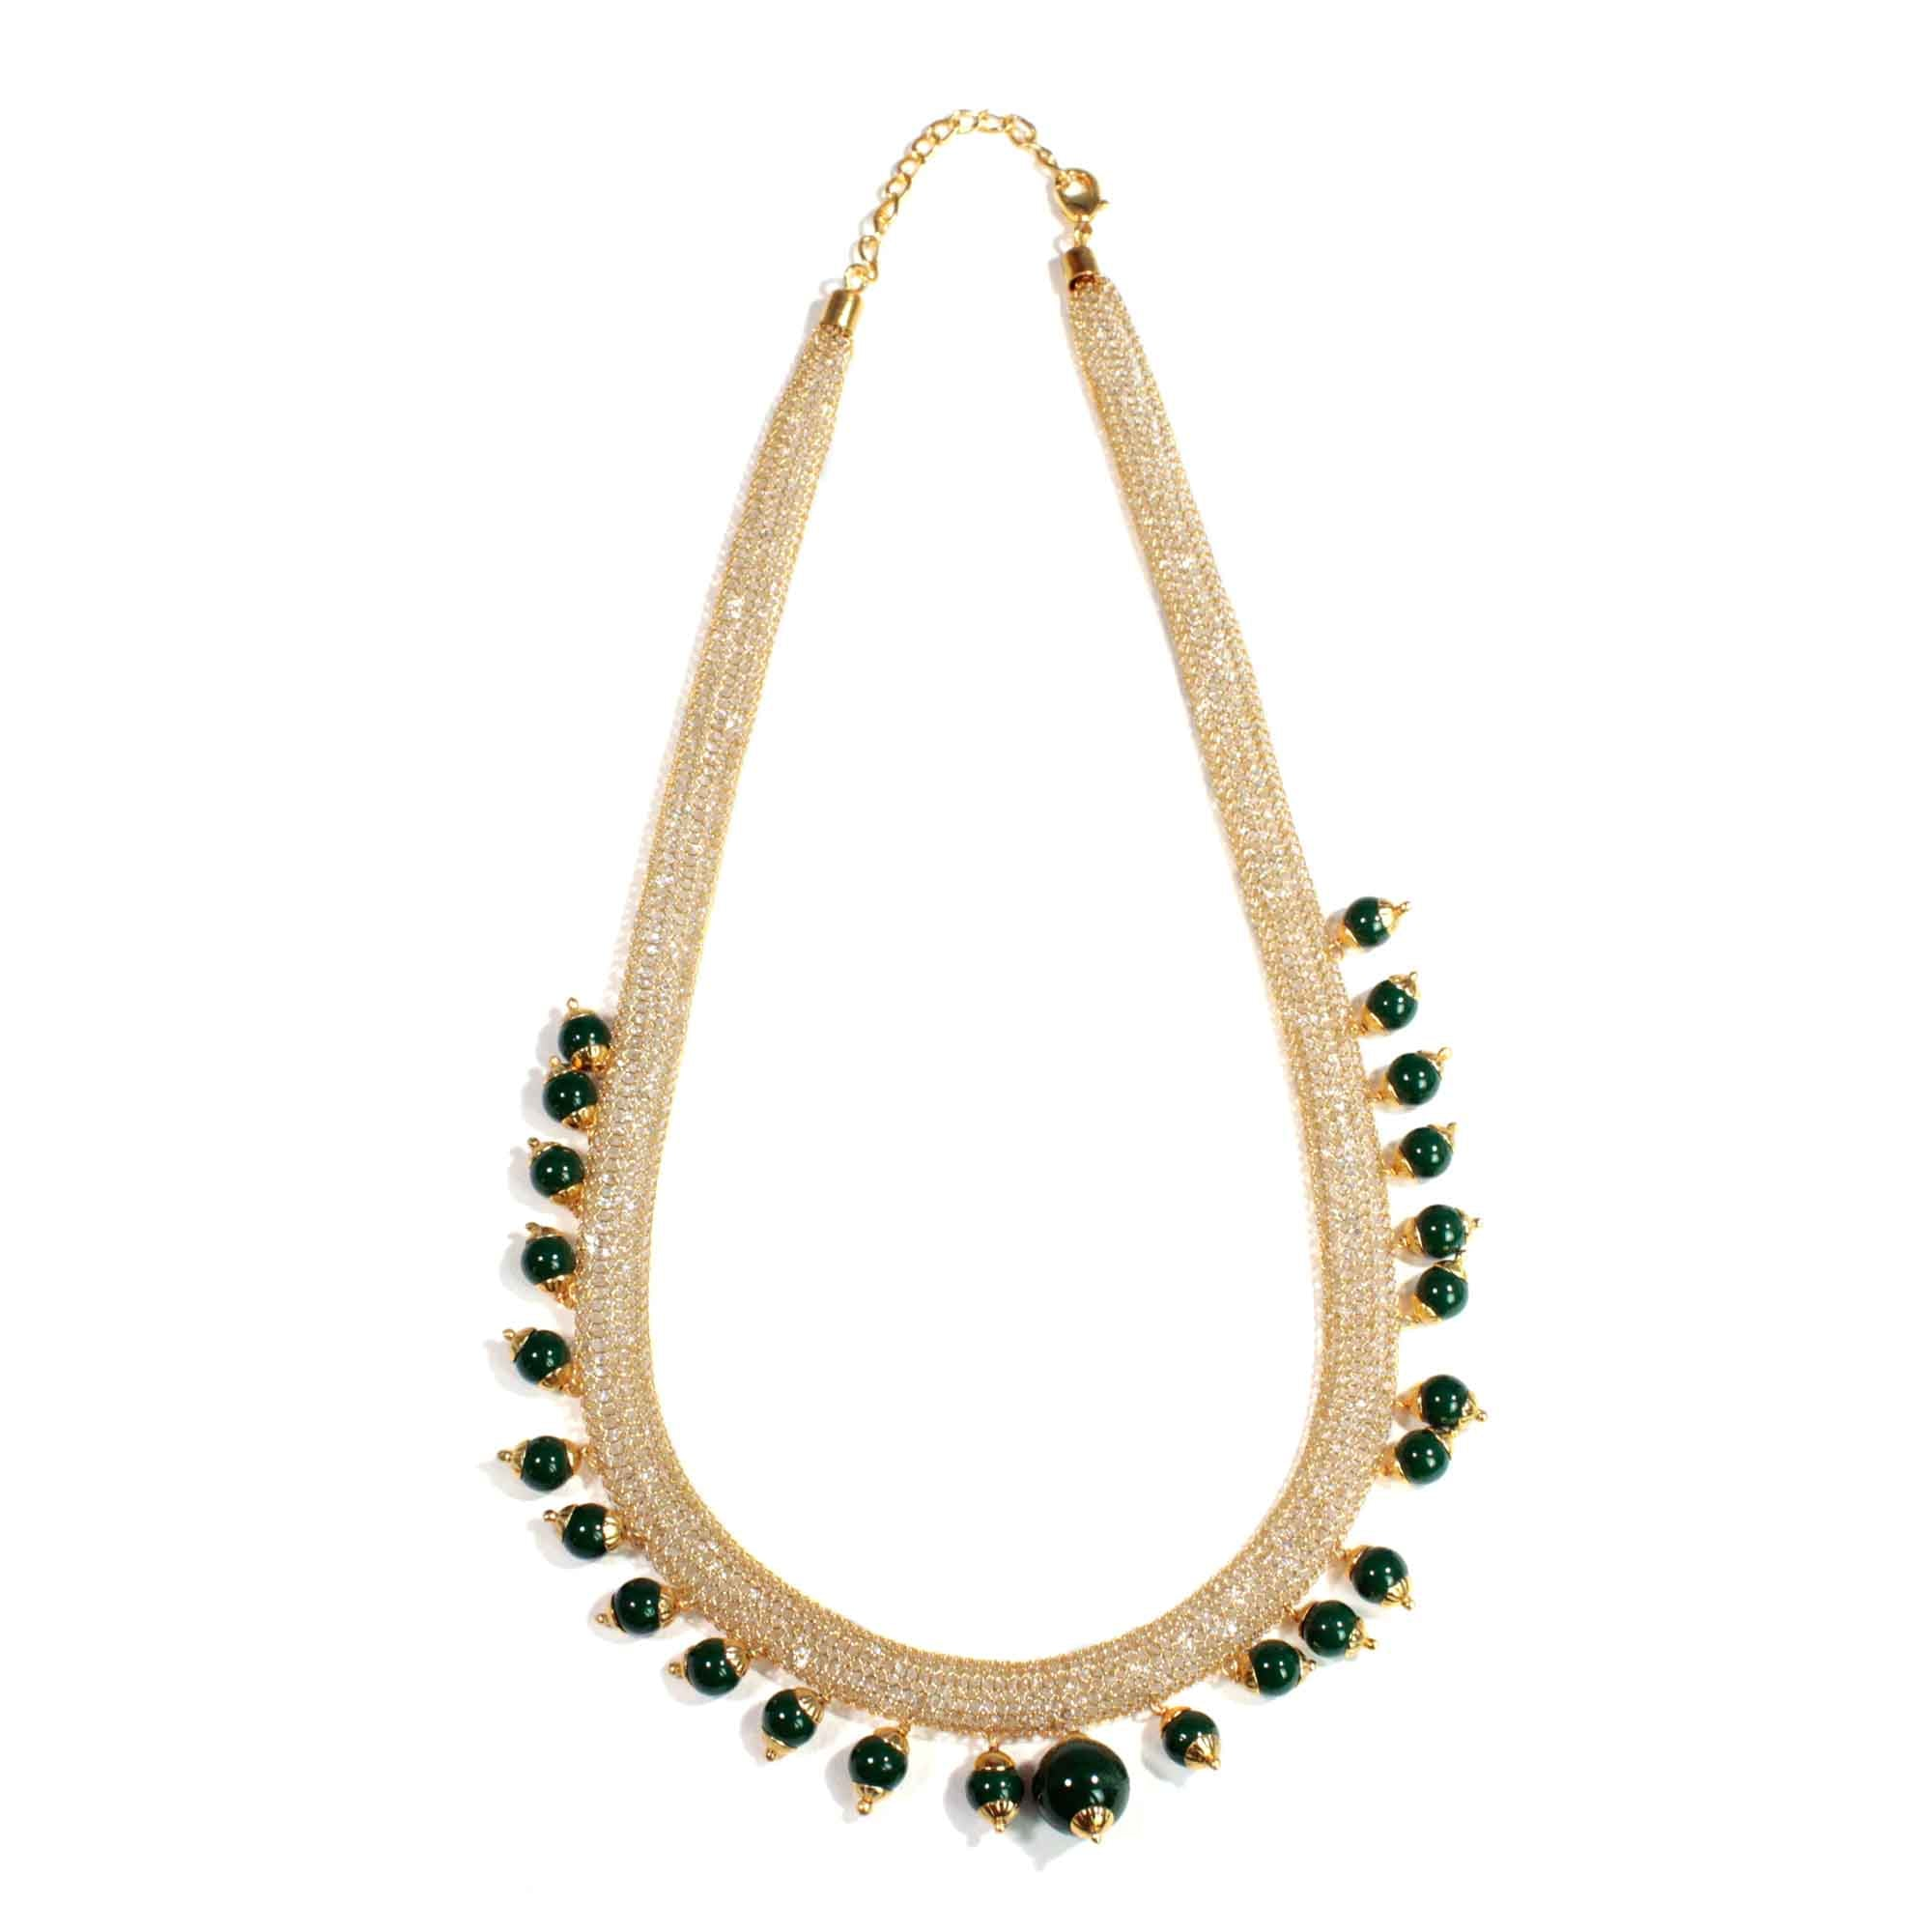 Boho Style Gold Plated Wire Mesh Necklace Set With Dark Green Beads